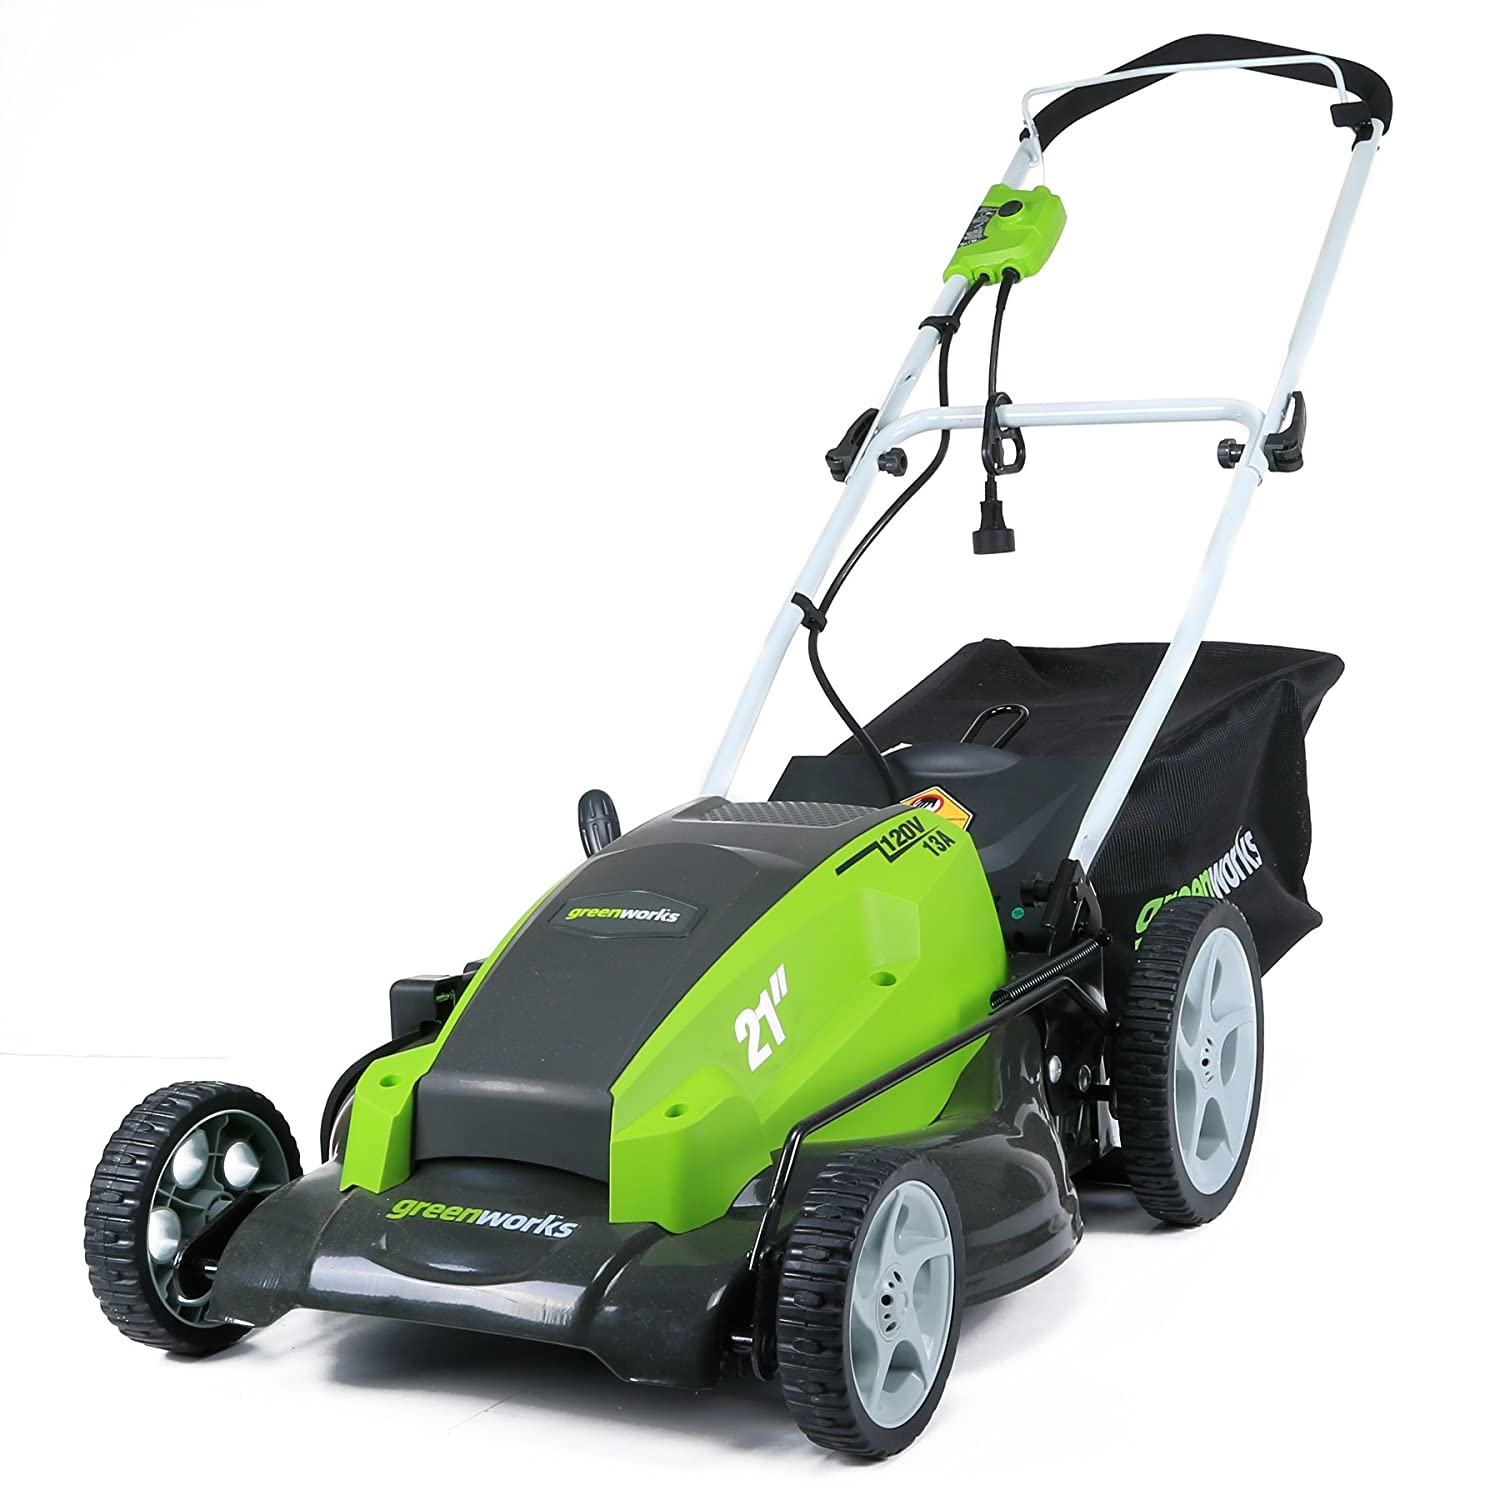 Amazon Greenworks 21 Inch 13 Amp Corded Lawn Mower